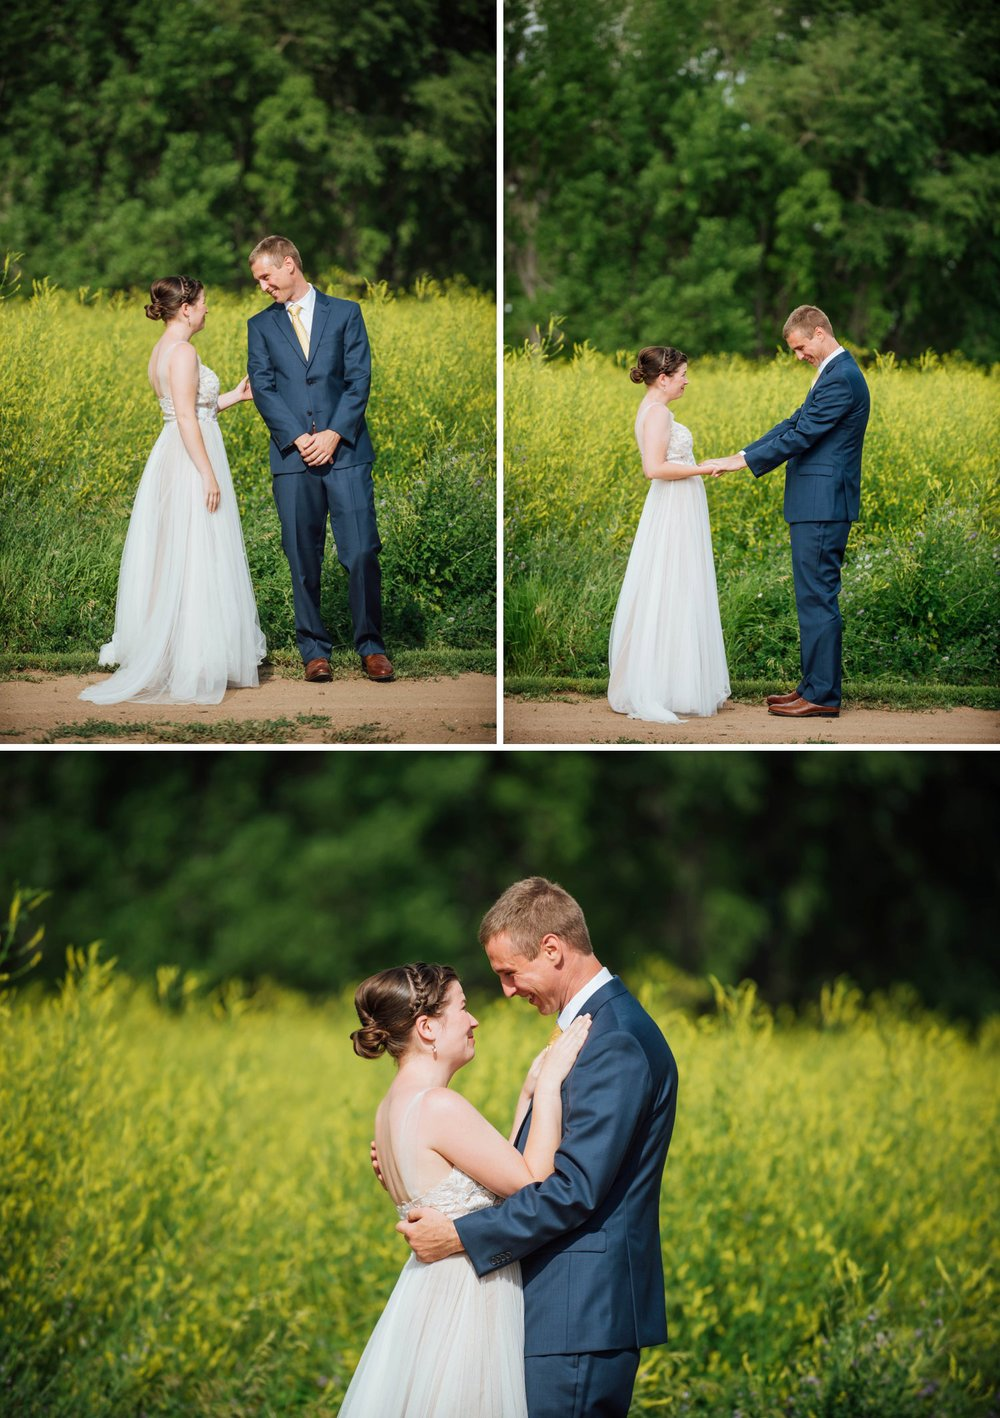 This first look is so cute! And I love the tall grass behind - it adds the perfect backdrop to such a sweet moment. Photo by Maddie Mae Photography